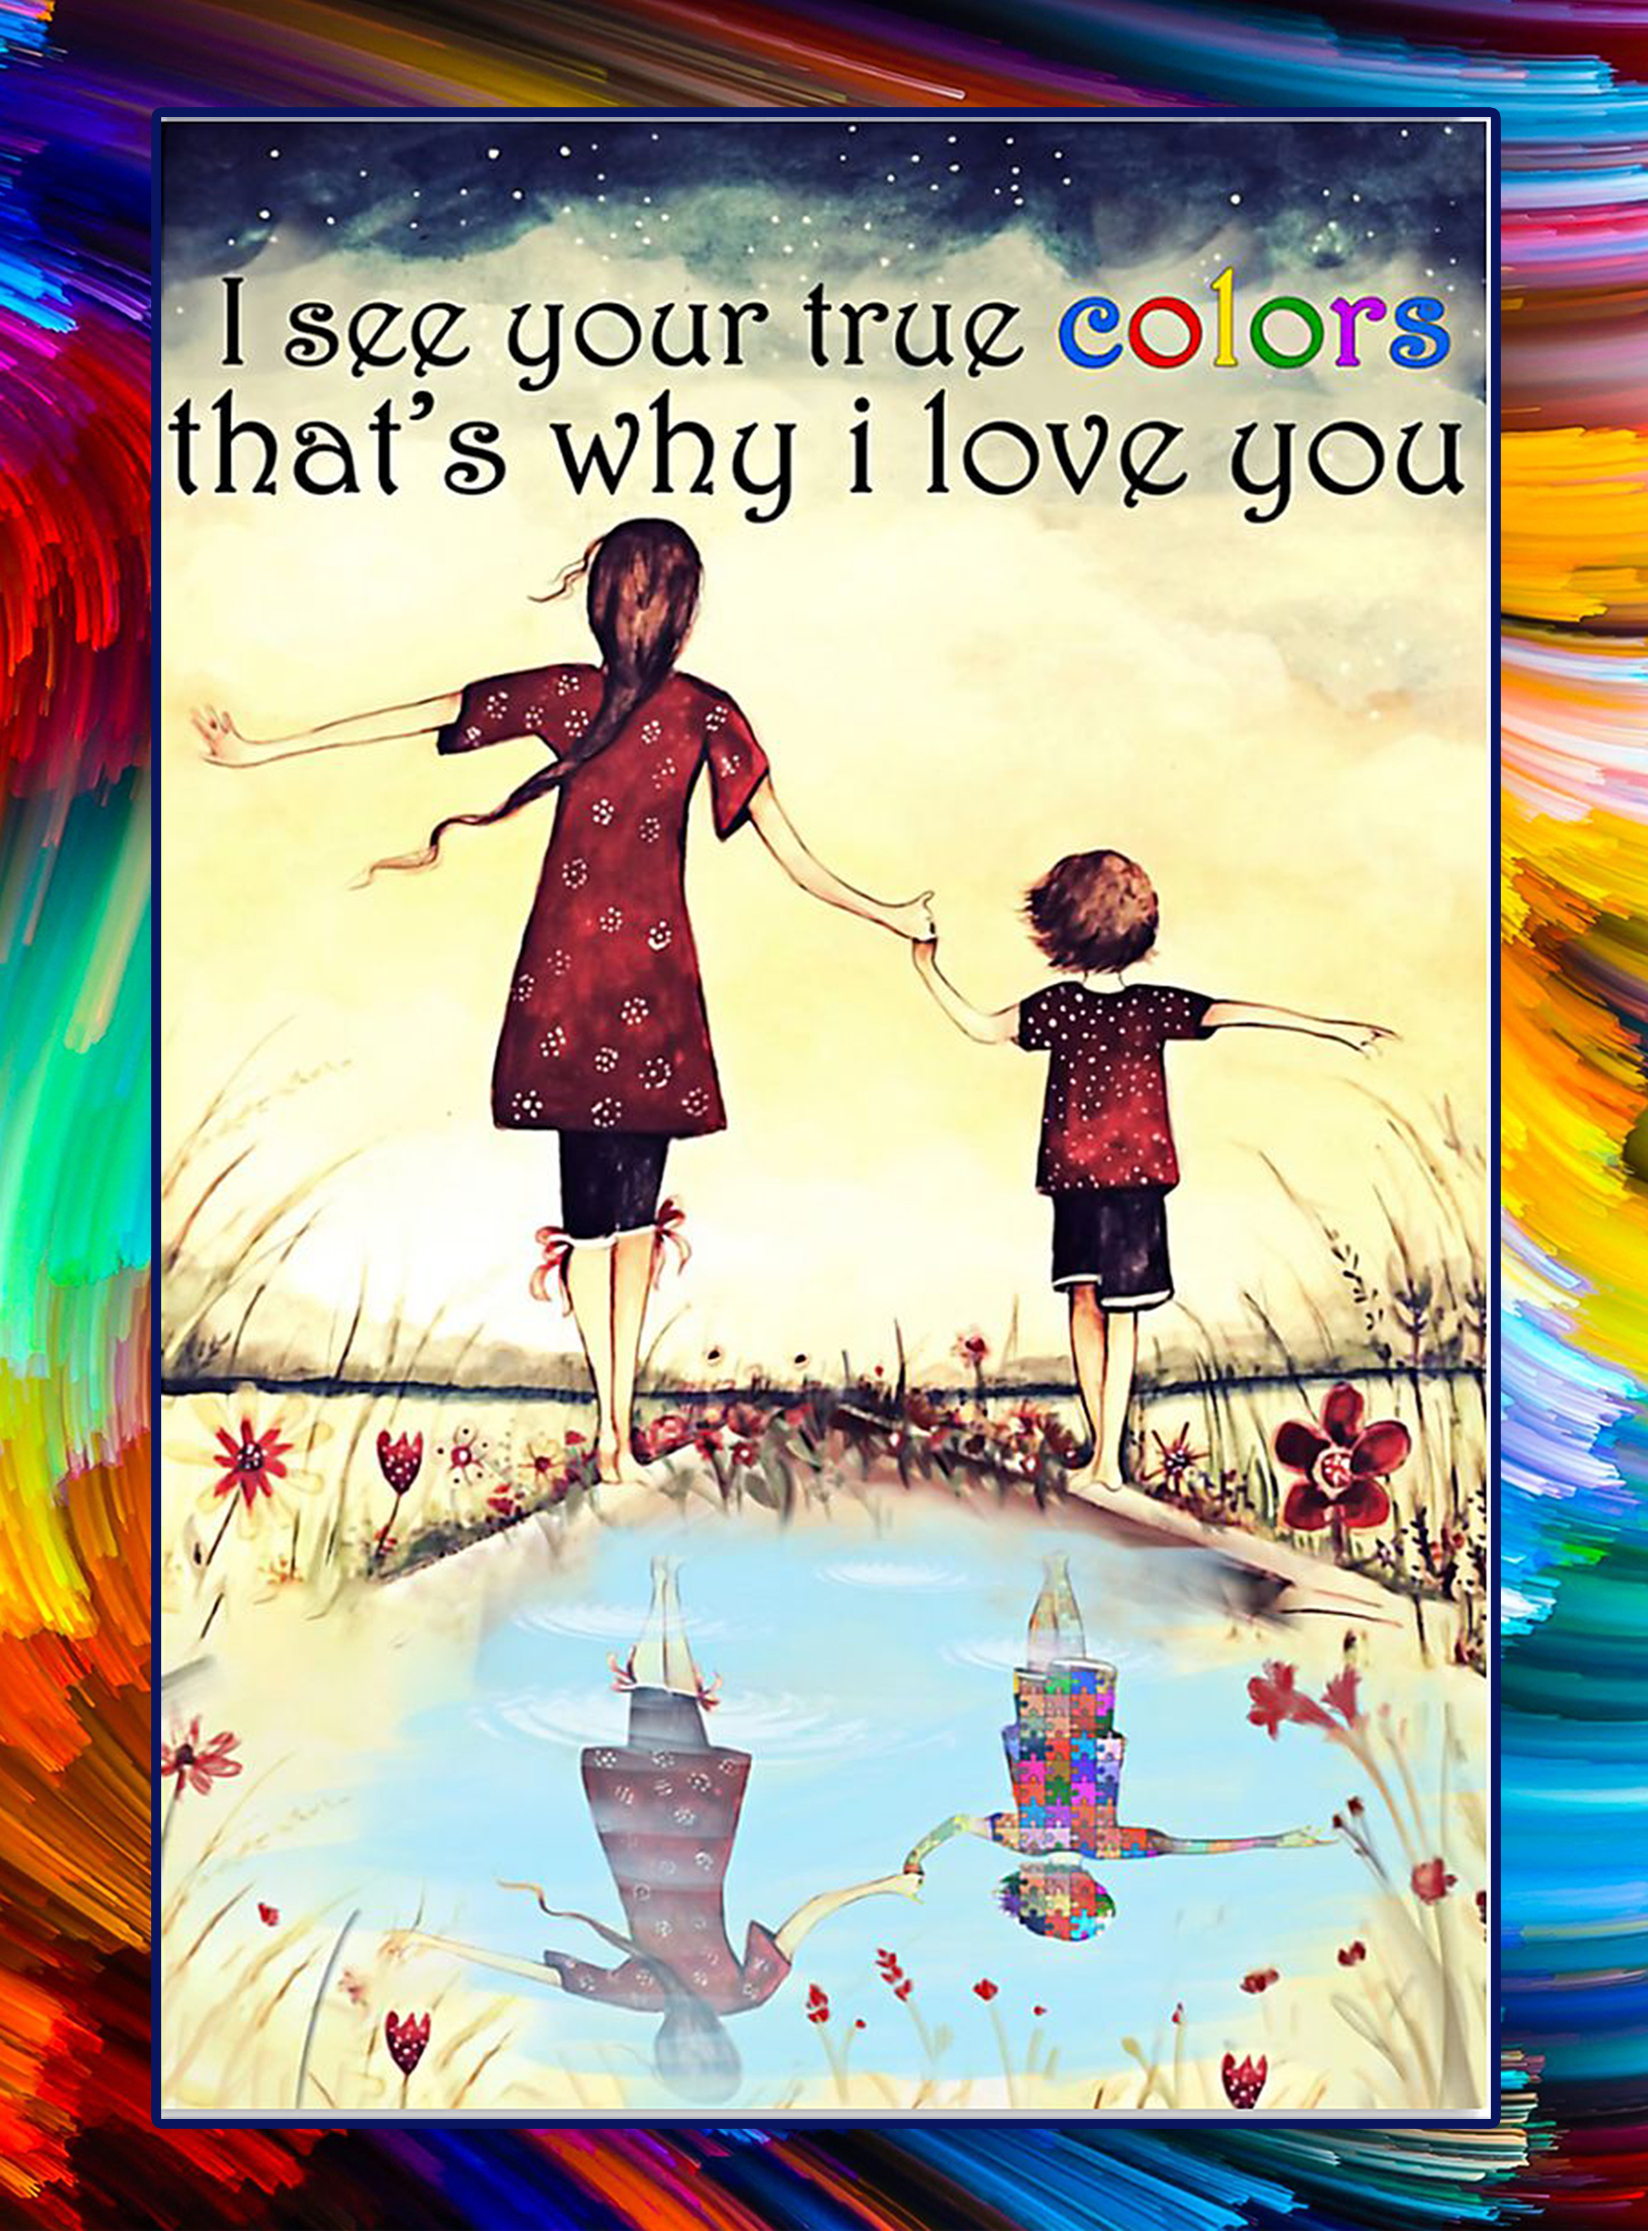 I see your true colors autism poster - A2